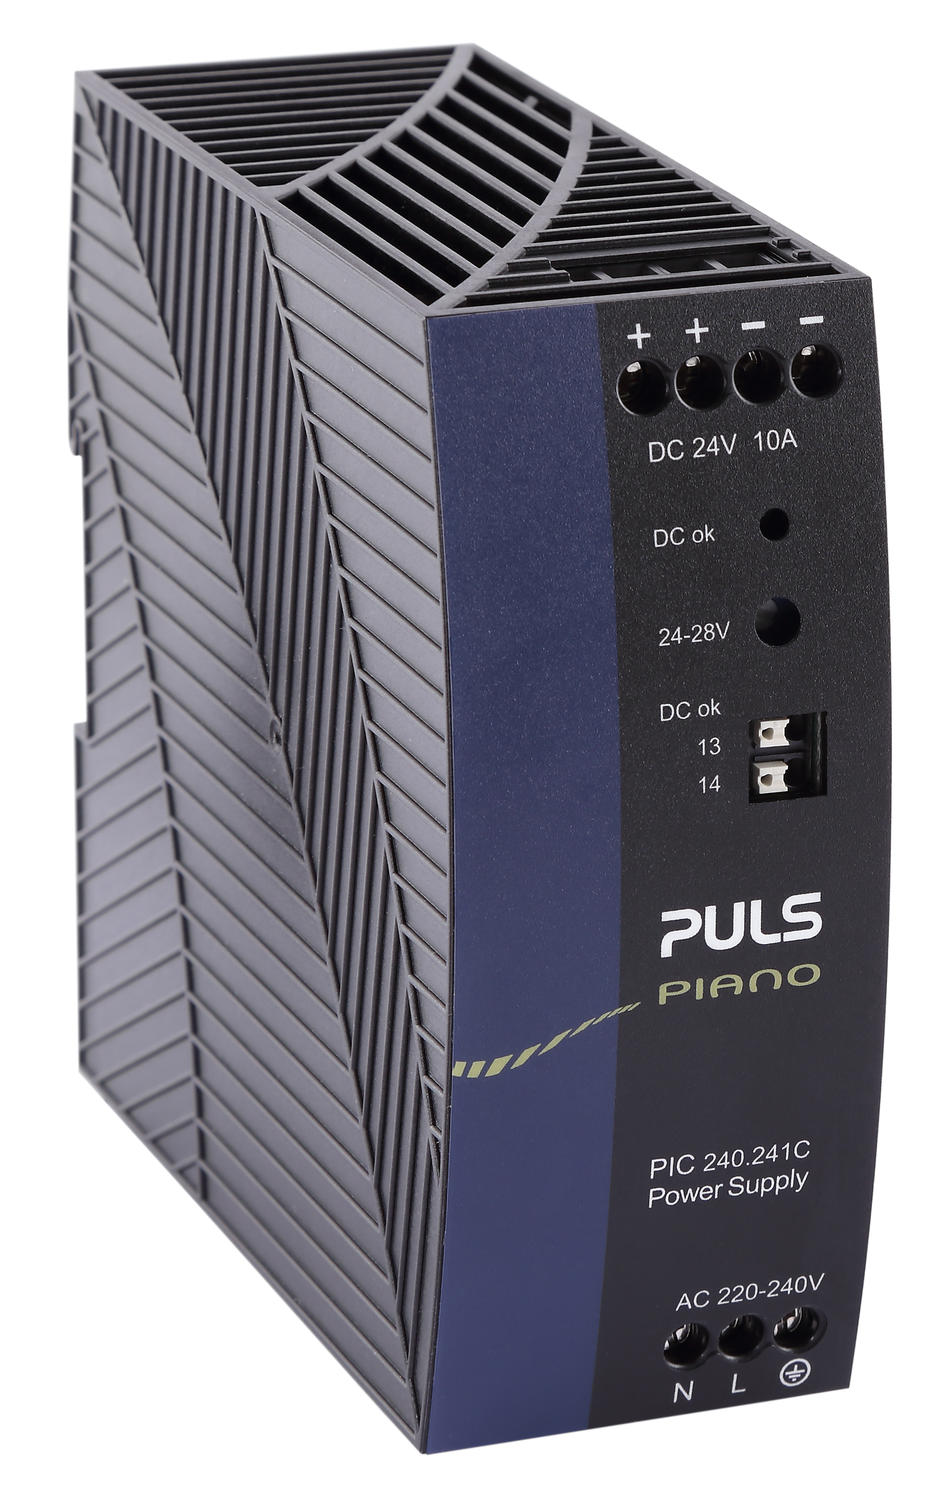 Power supply 1-phase, 24 V dc Piano Series